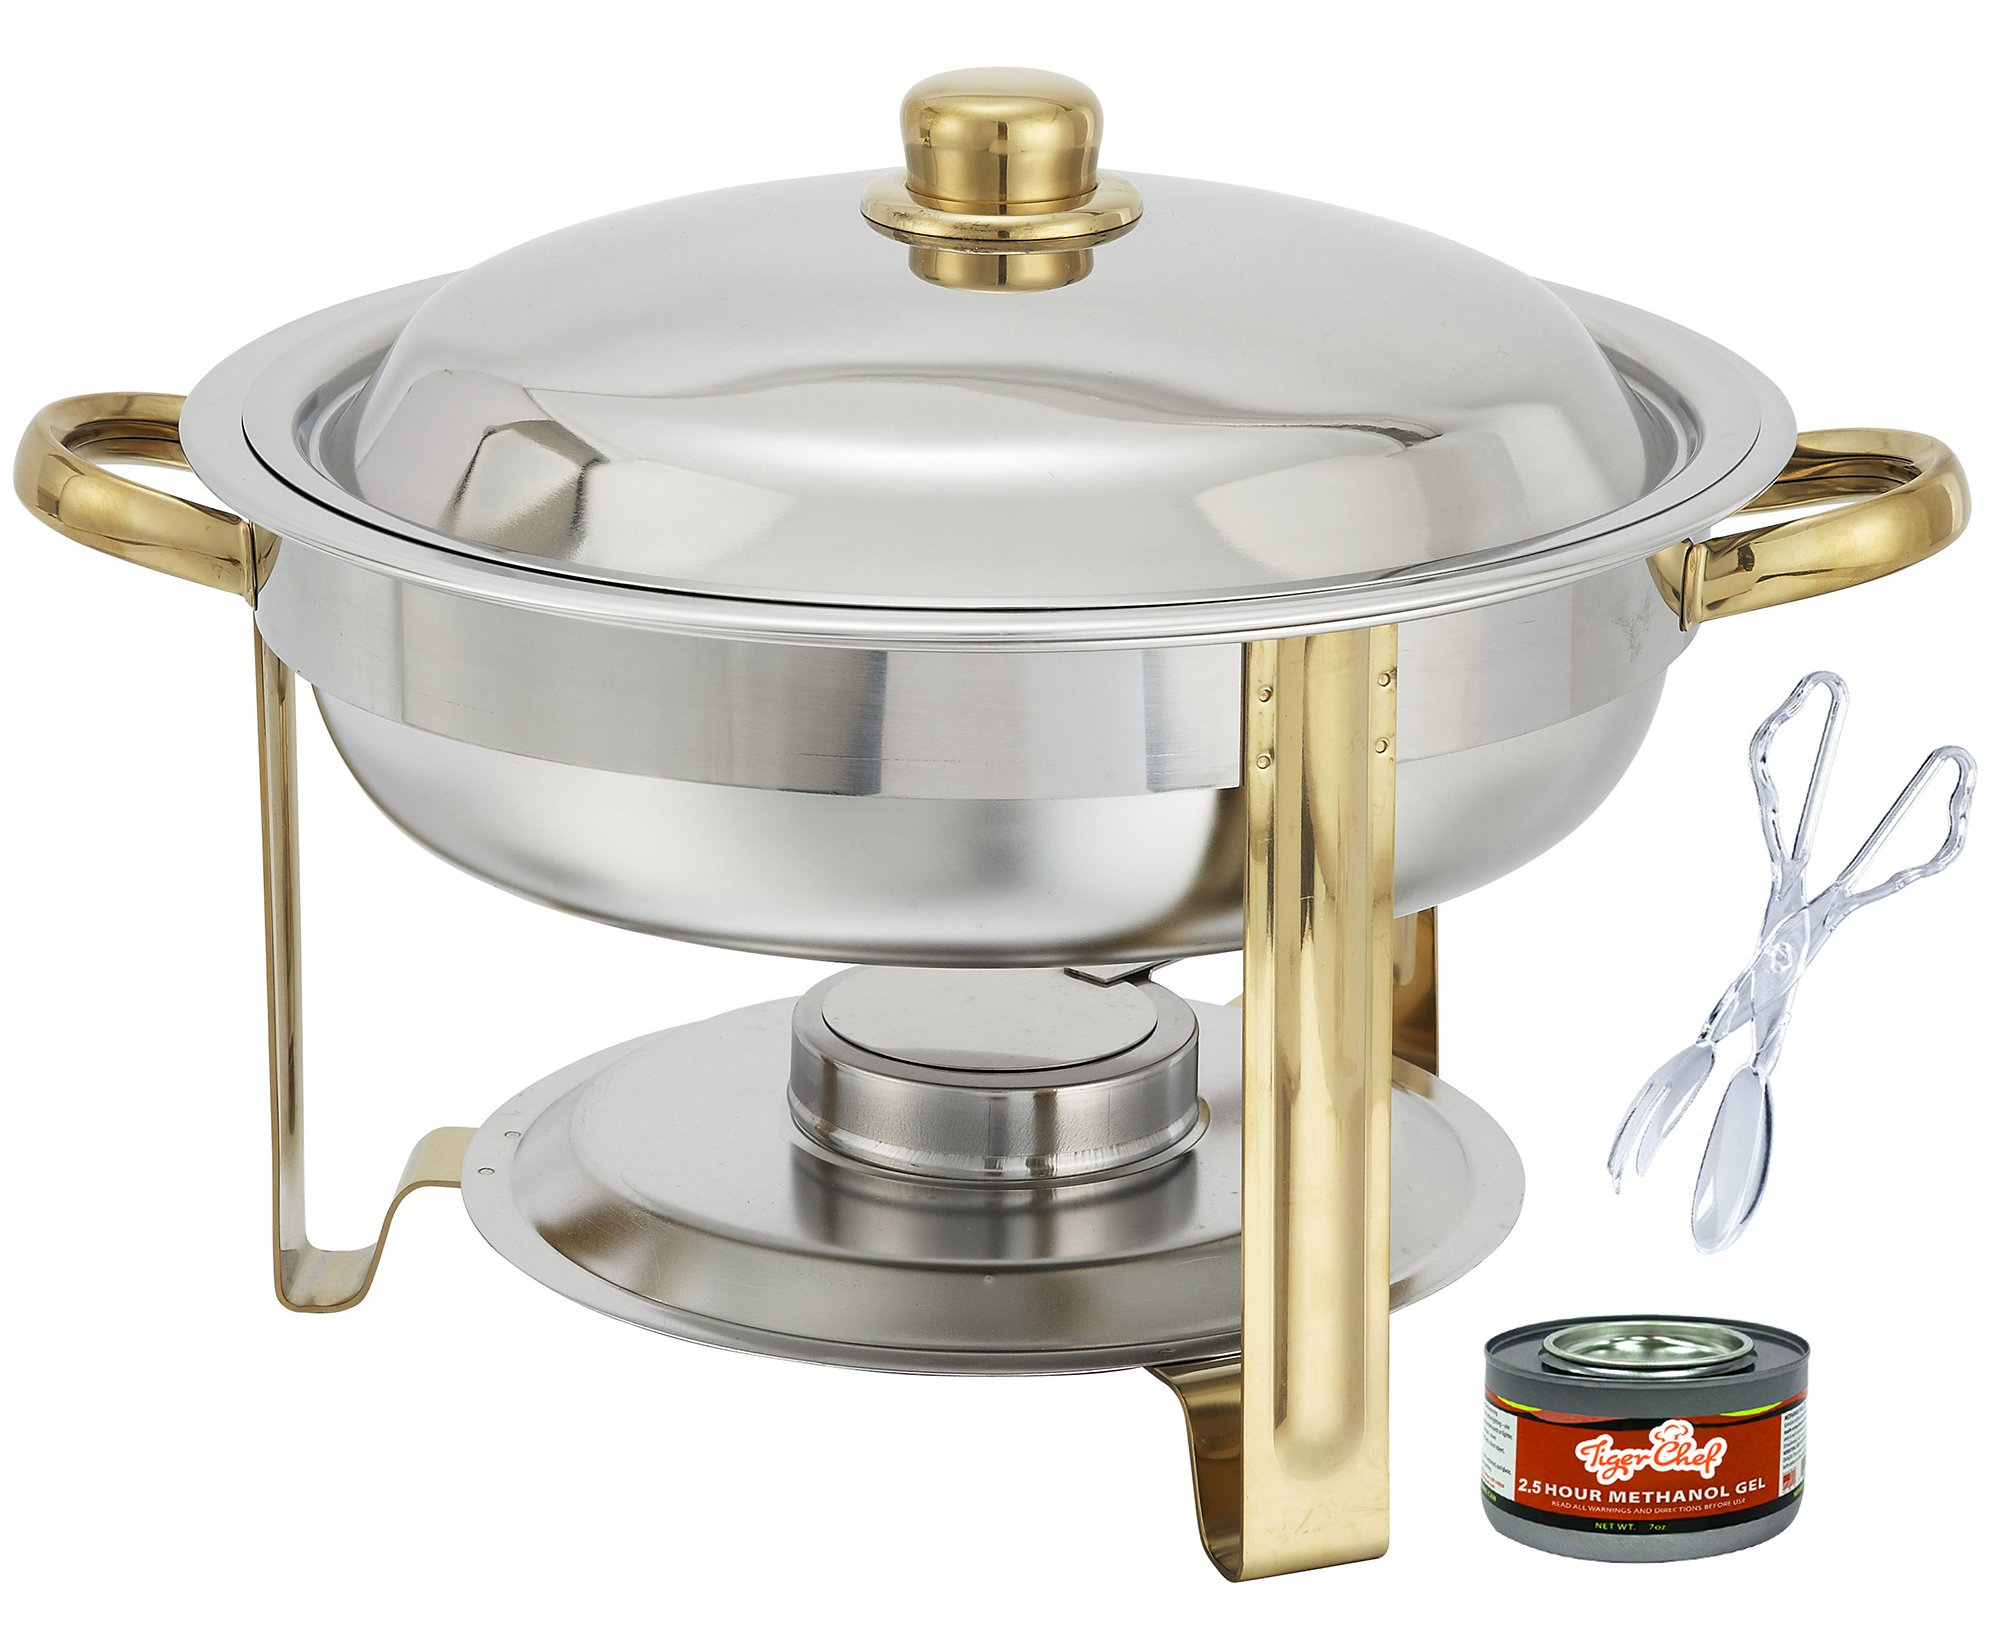 Tiger Chef 4 Quart Round Chafing Dish Buffet Warmer Set, Gold Accented Chafer, Includes Free Chafing Fuel Gel and Plastic Serving Tongs